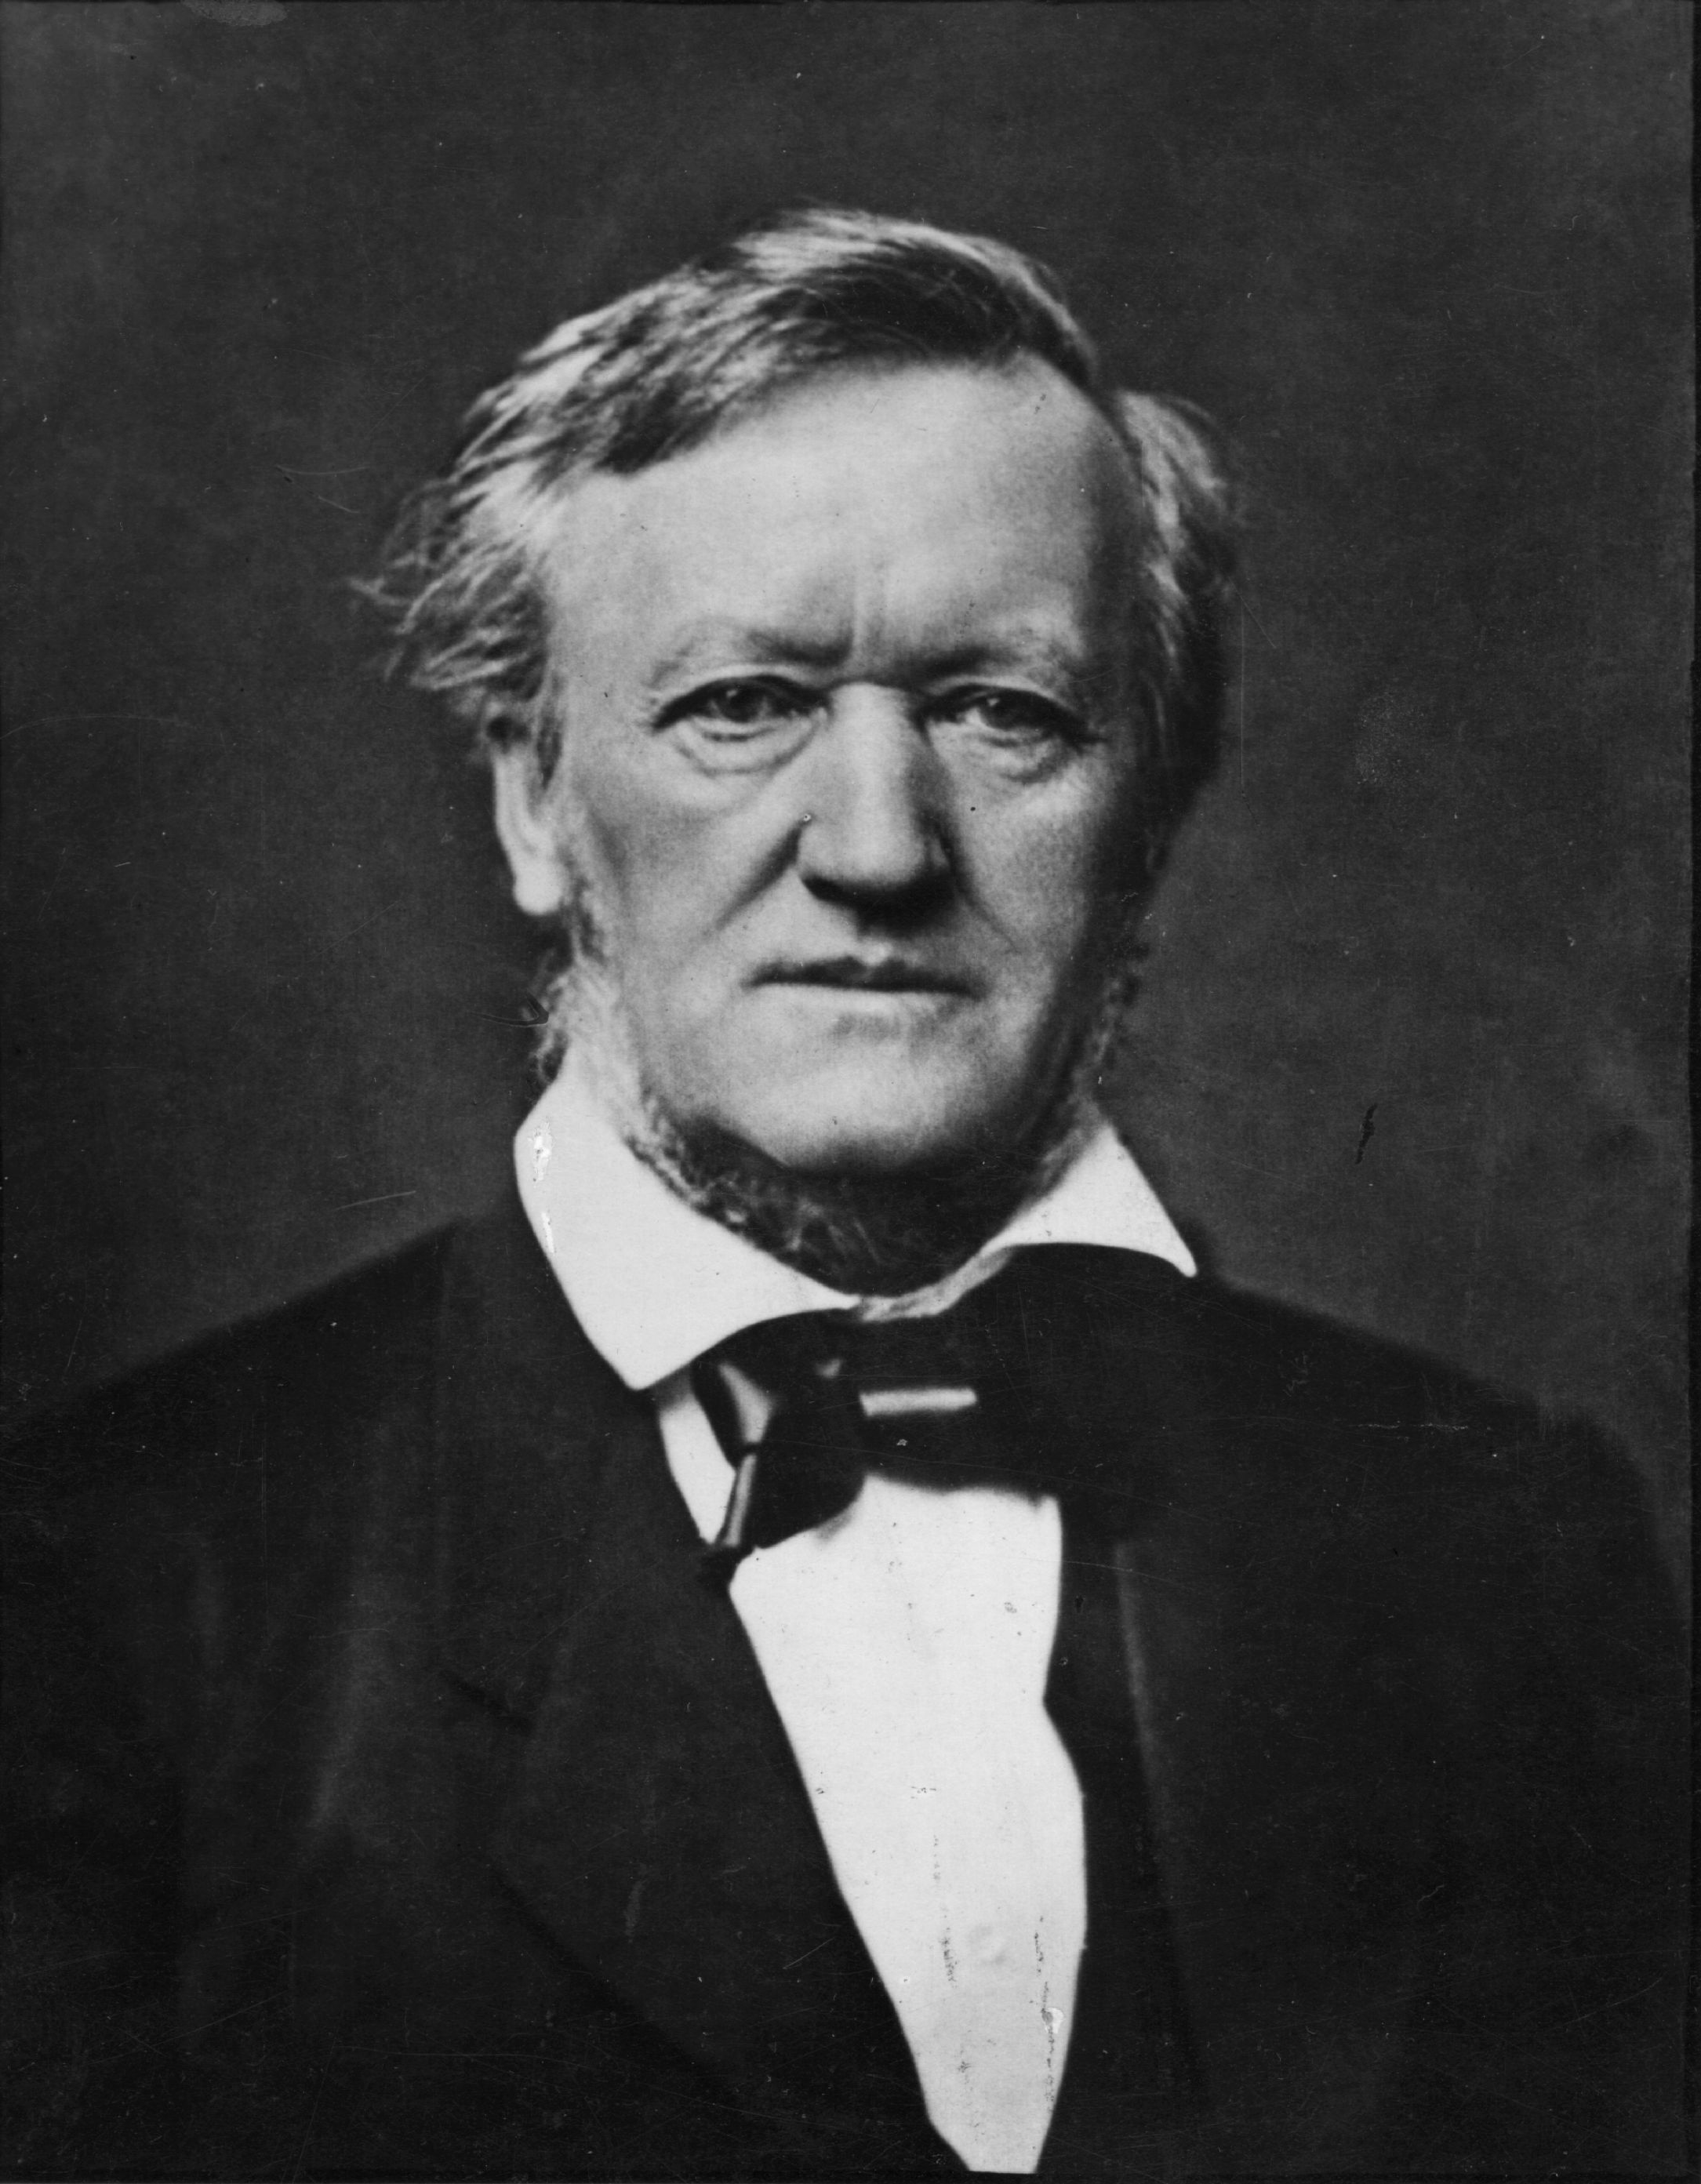 richard wagner and 19th century anti semitism Weiner did a great job wagnerites normally dismiss the allegations of anti-semitism, using the old hat about music as pure art wagner is a proto-nazi and racist when writing, but a genial artist while composing.